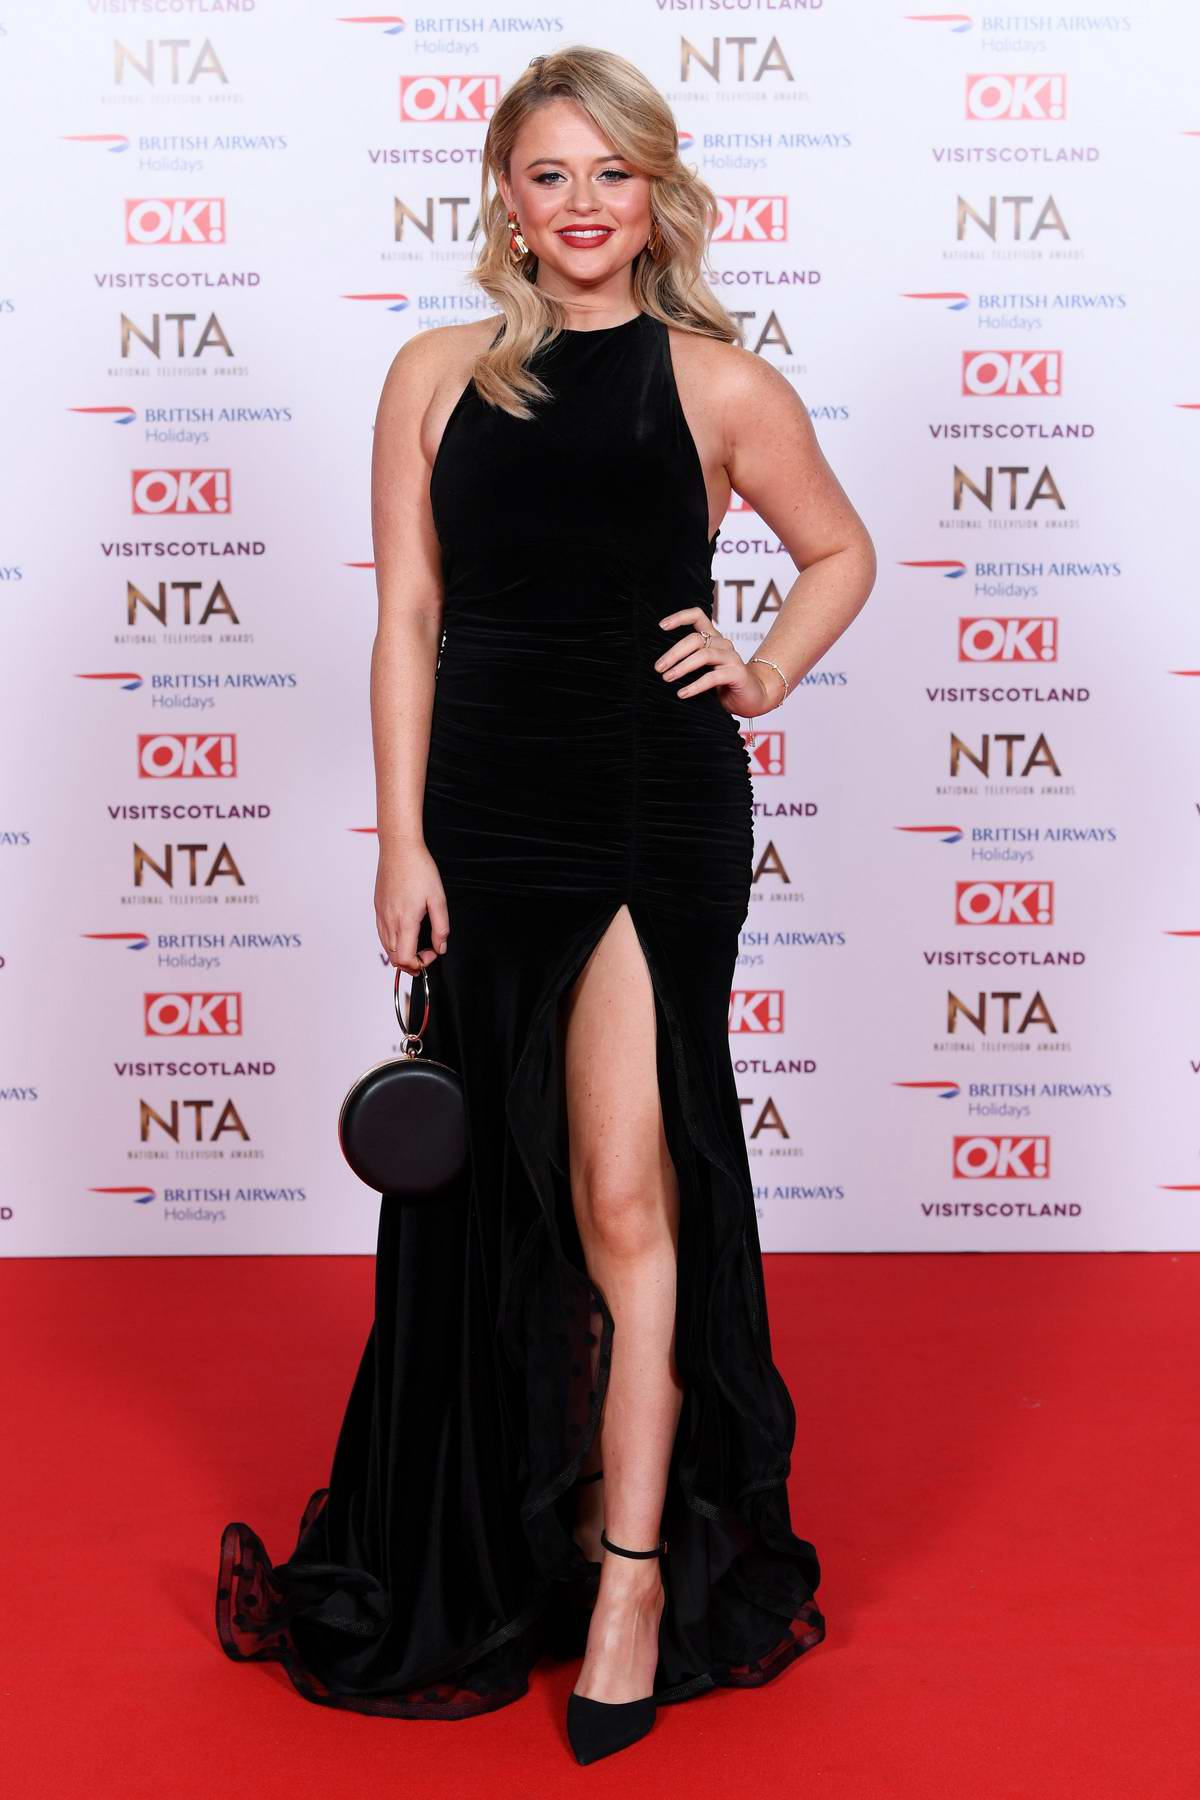 Emily Atack attends 23rd National Television Awards in London, UK